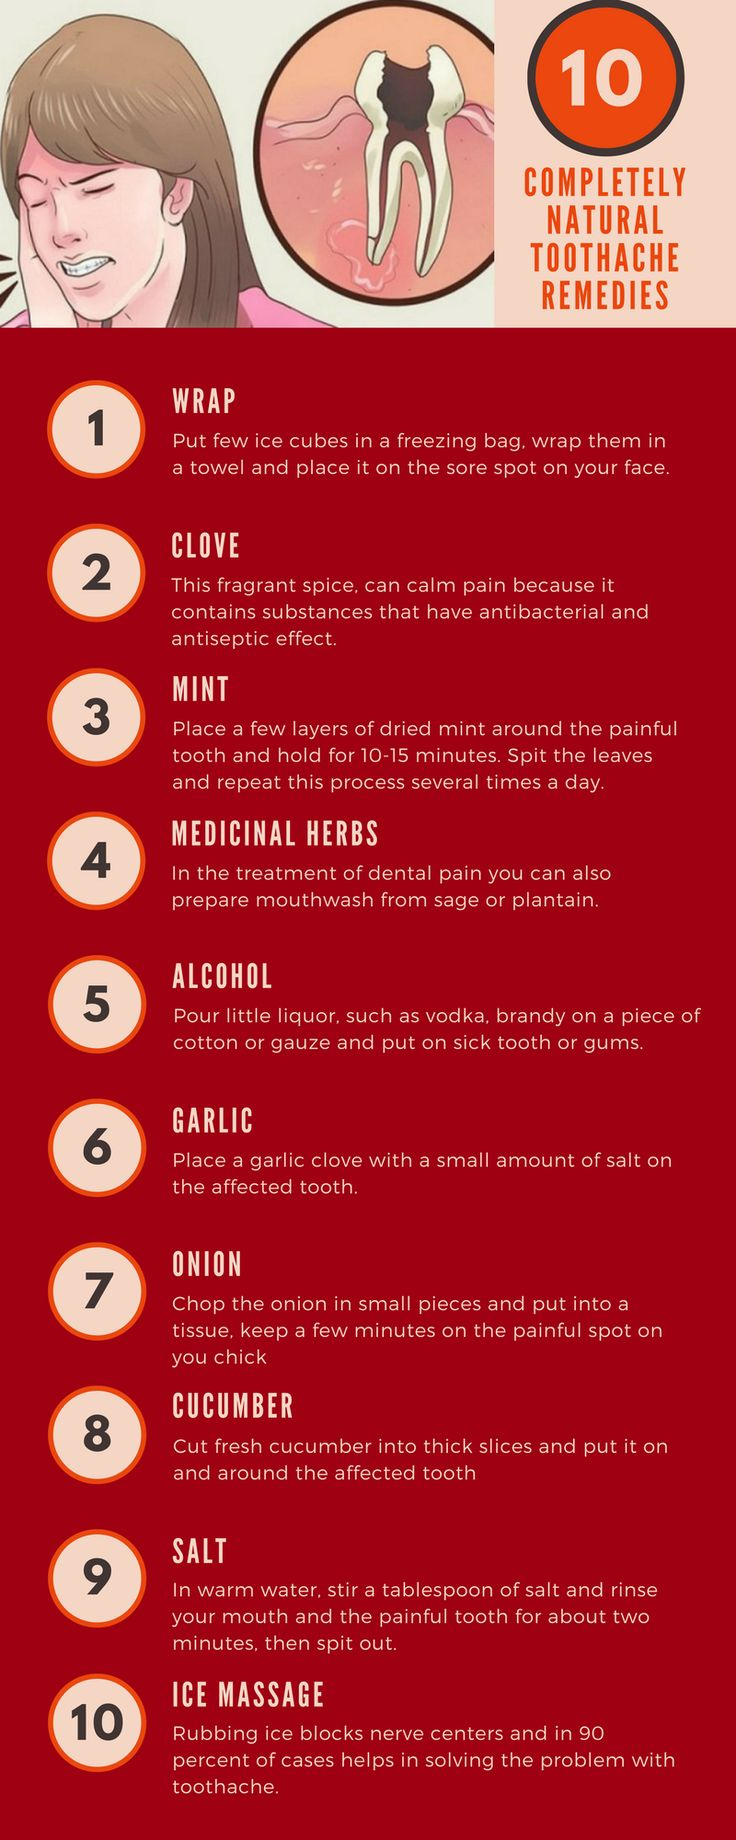 26 best Tooth pain images on Pinterest | Home remedies, Natural ...